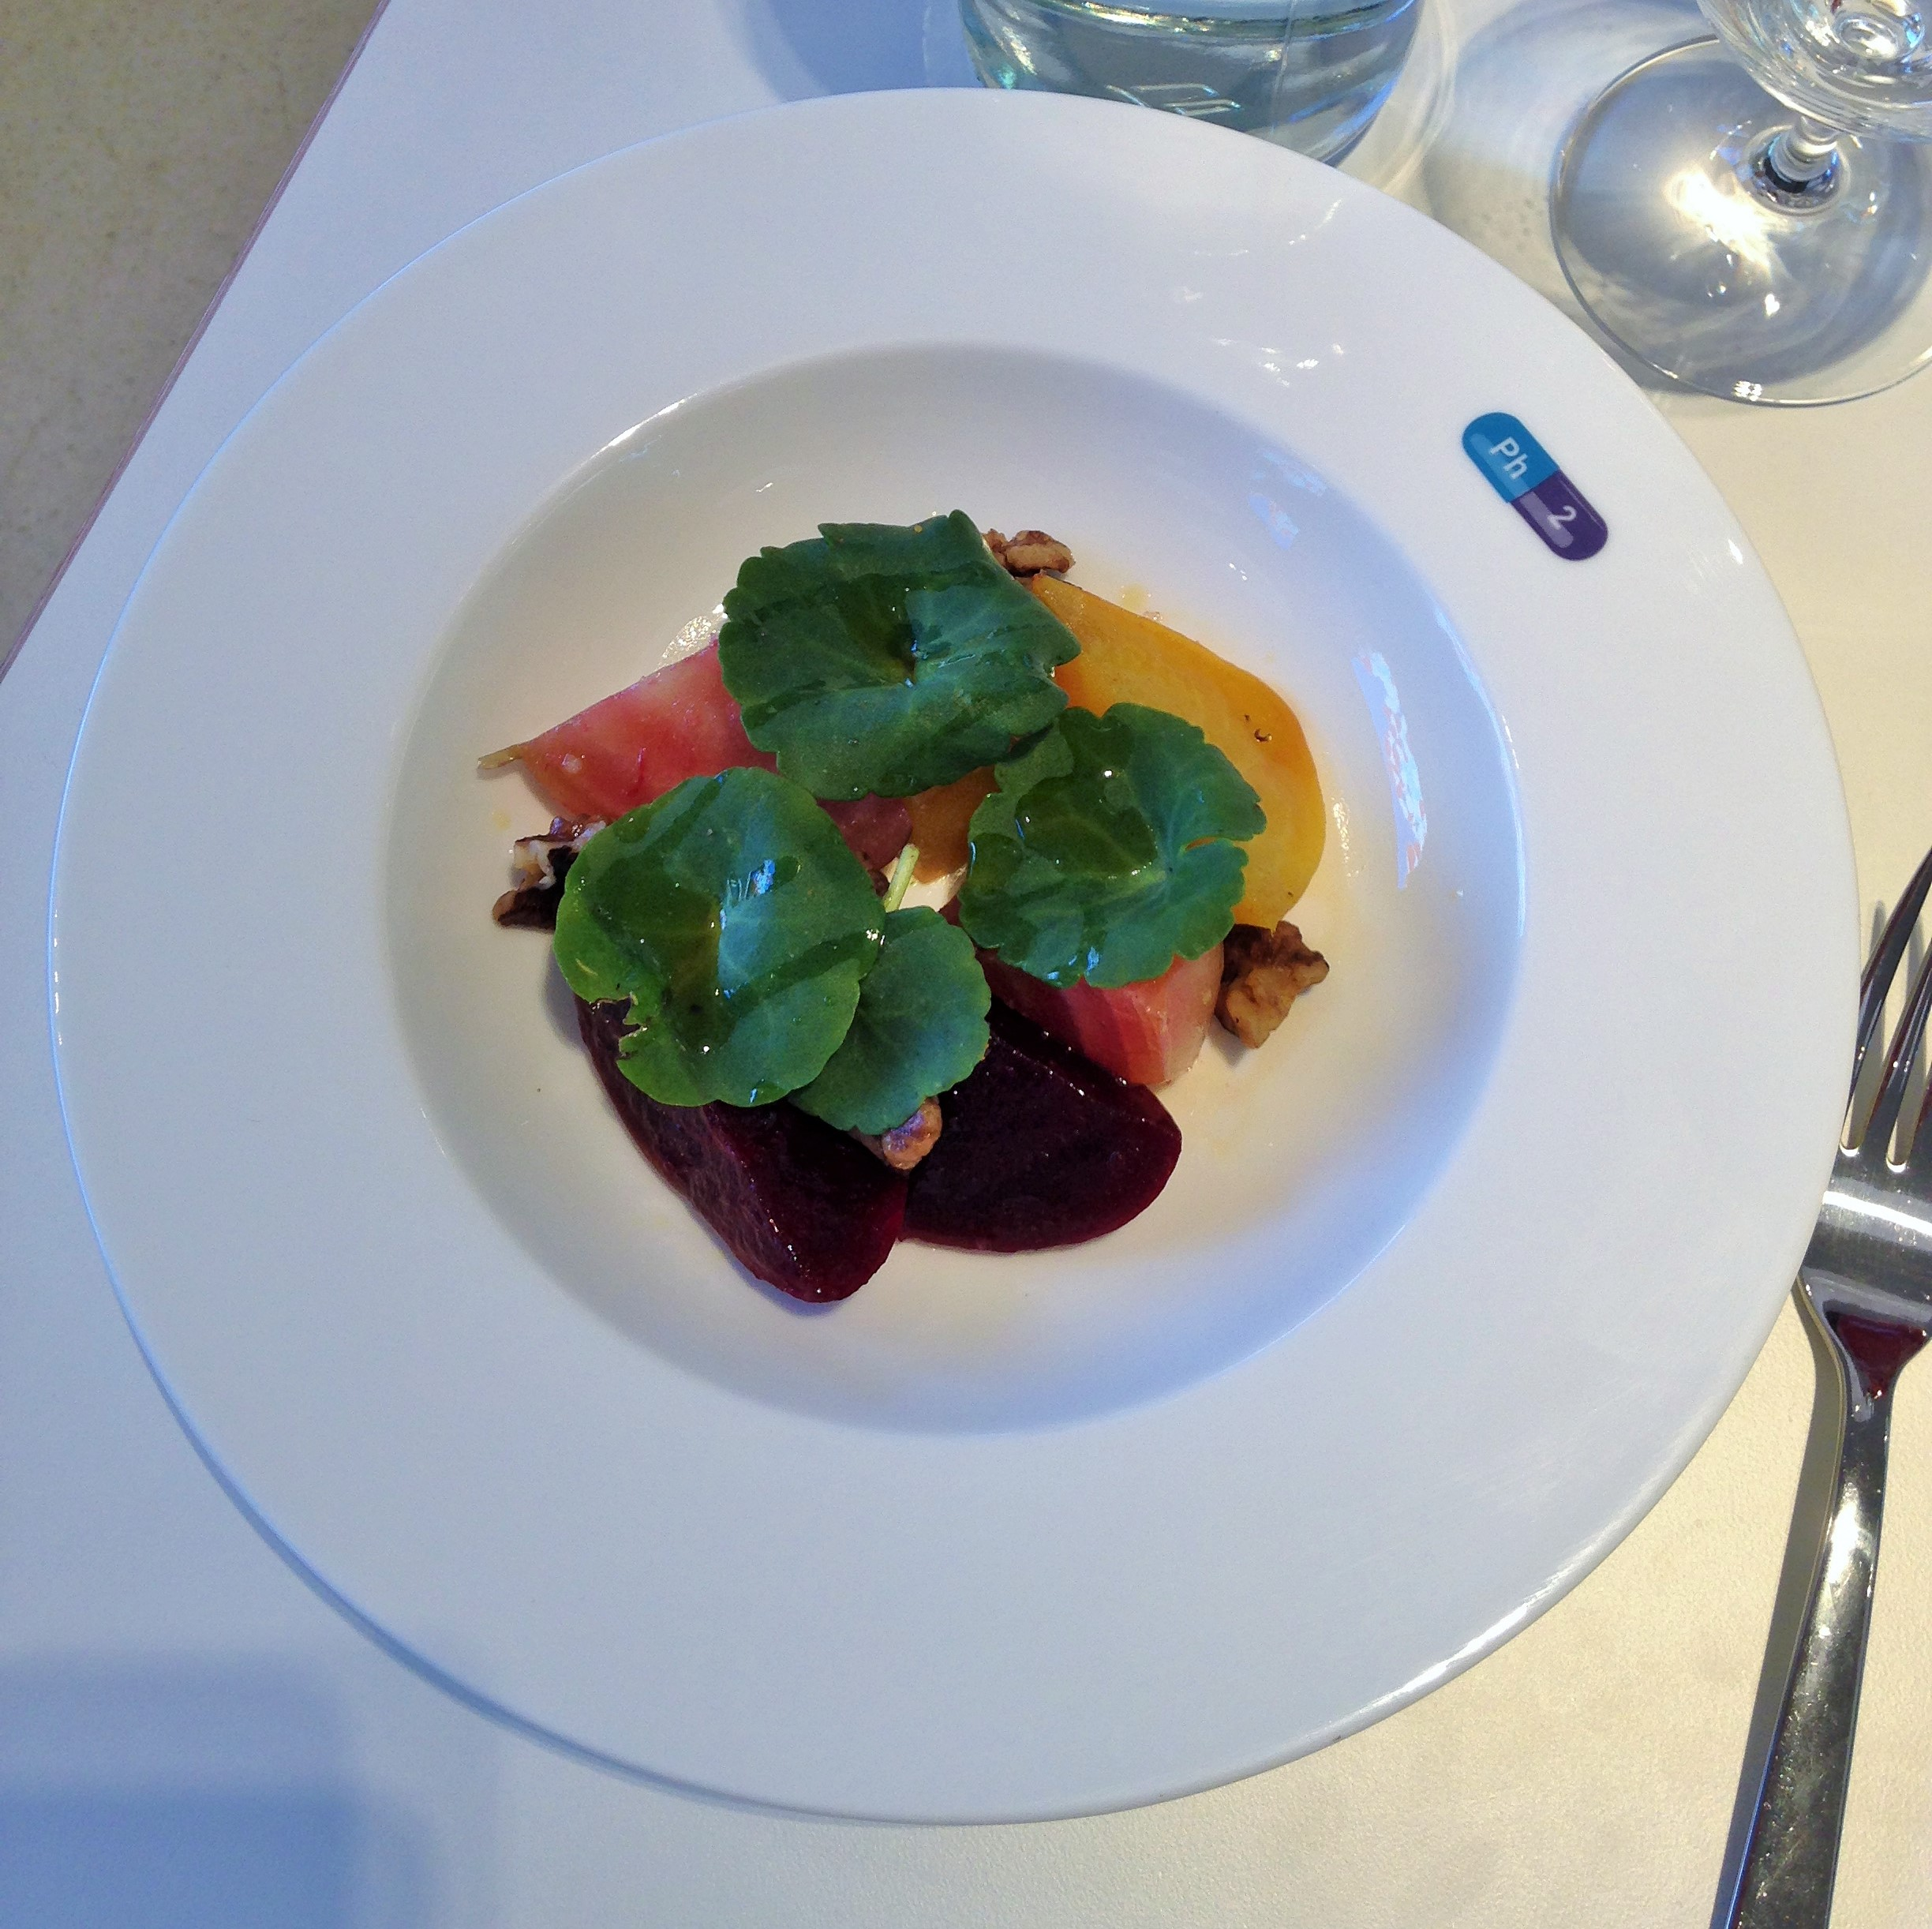 heritage beets with walnuts and chickweed at Pharmacy 2 - kenningtonrunoff.com